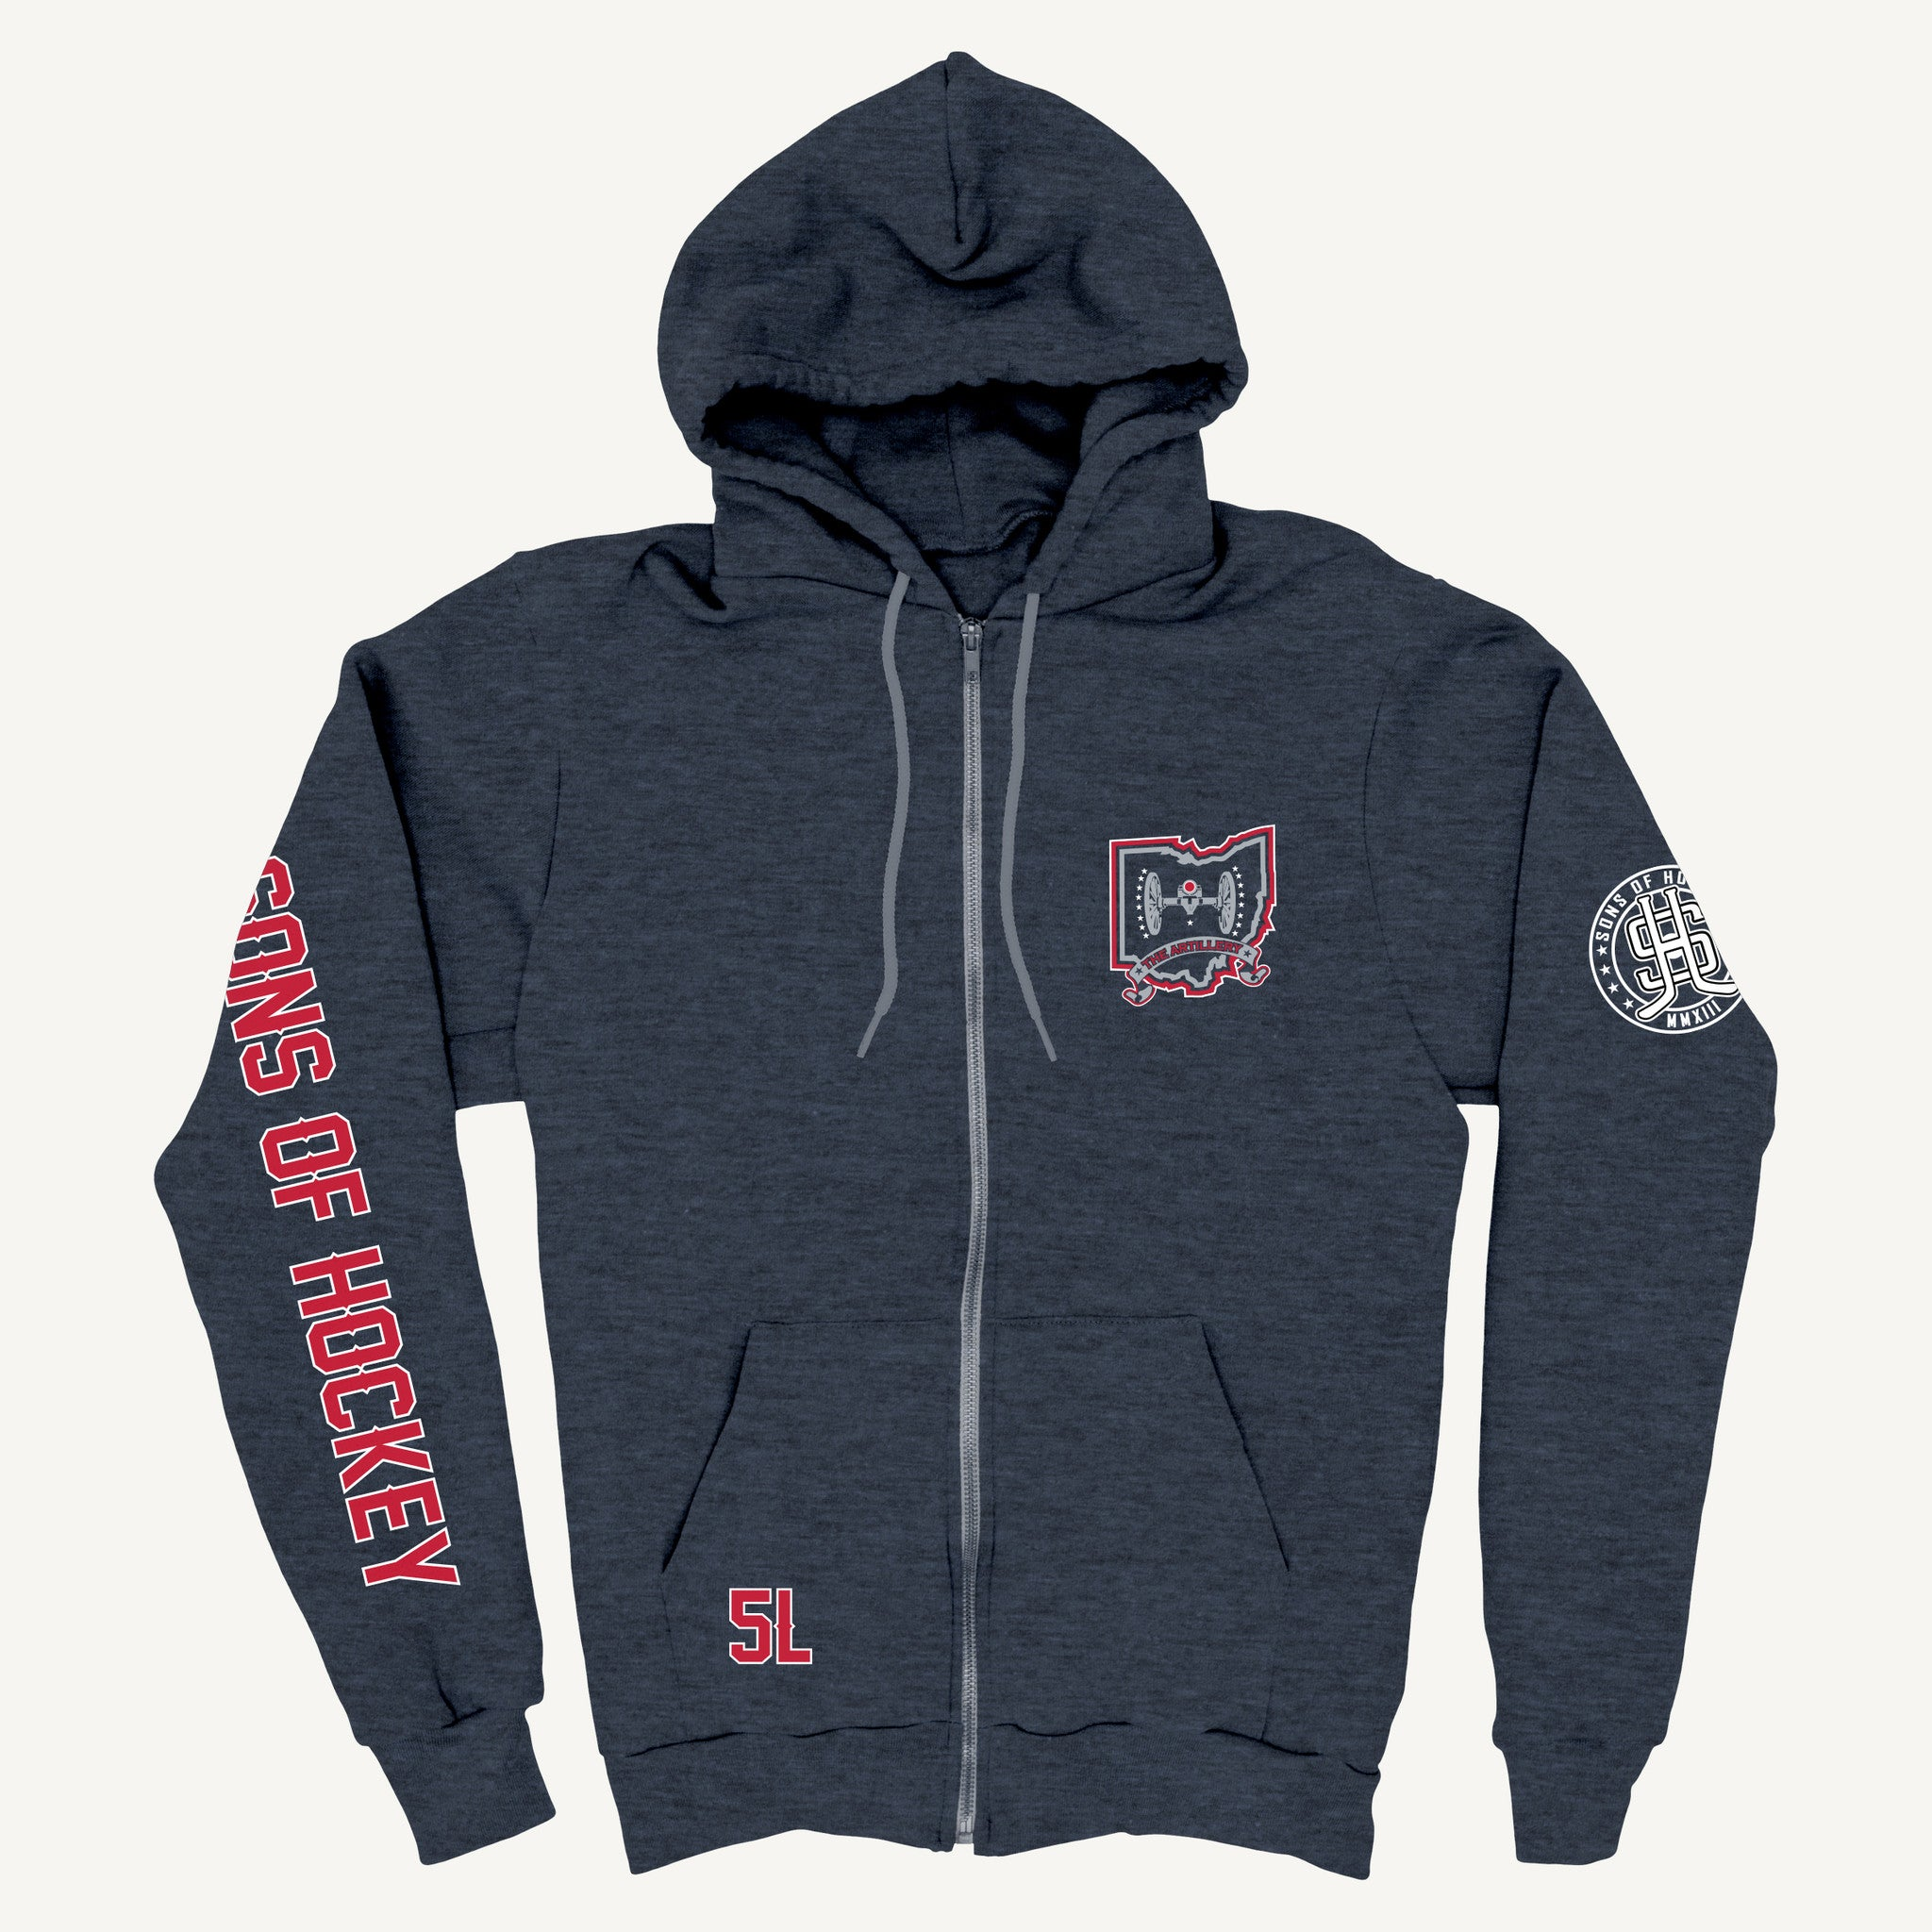 The Flag Bearer - Lightweight ZIP-UP Hoodie - Sons of Hockey